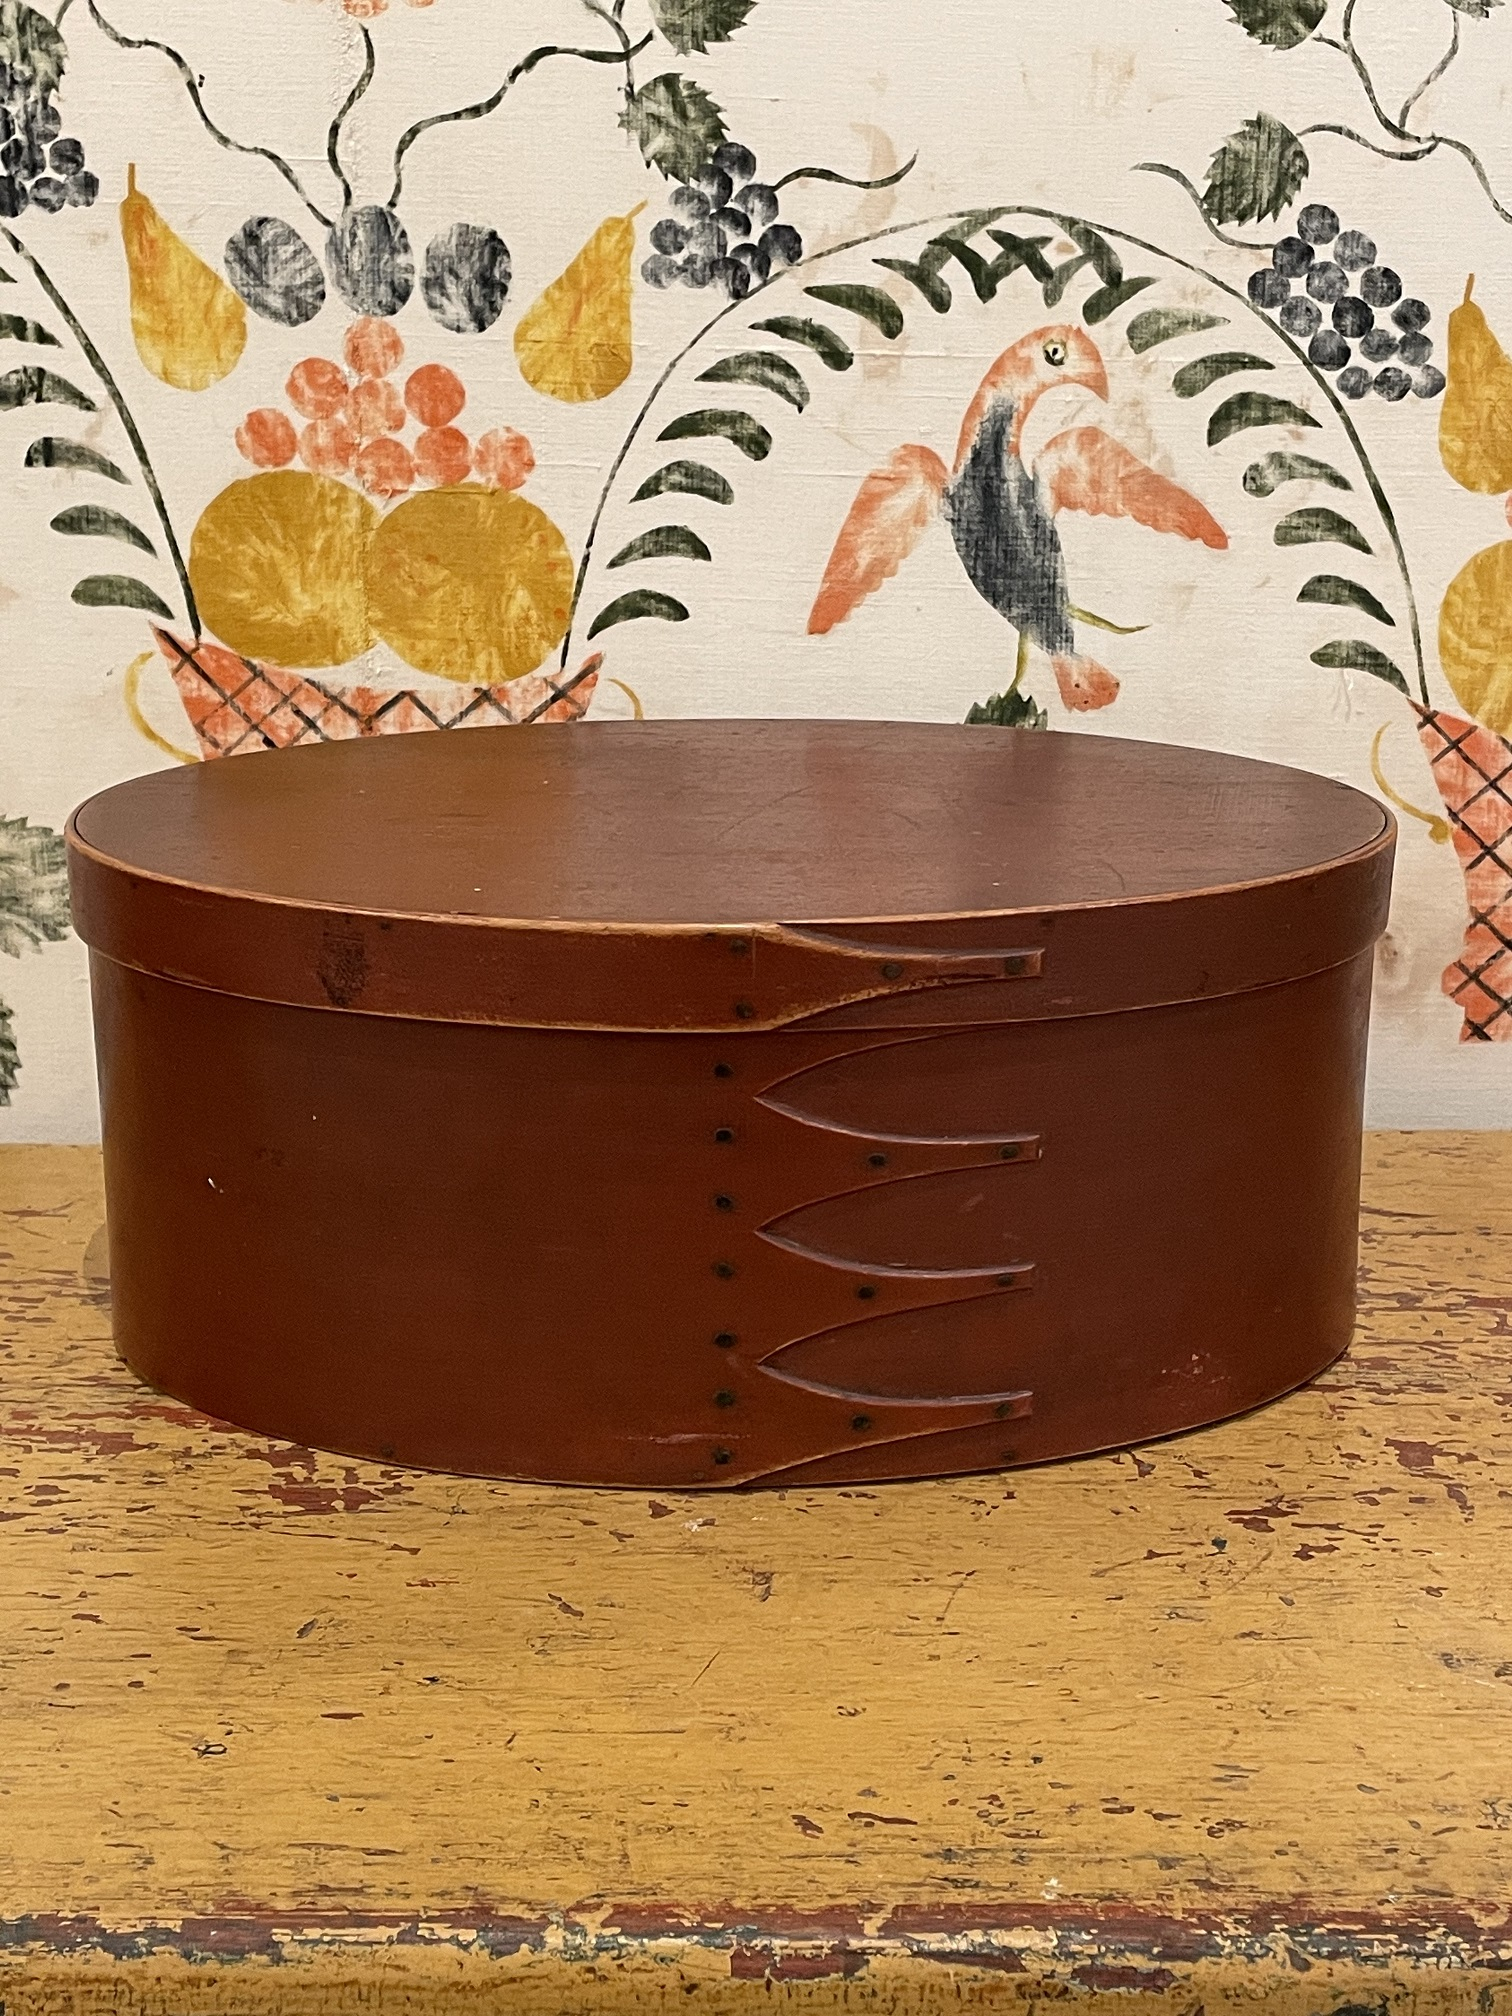 oval red shaker box rel=